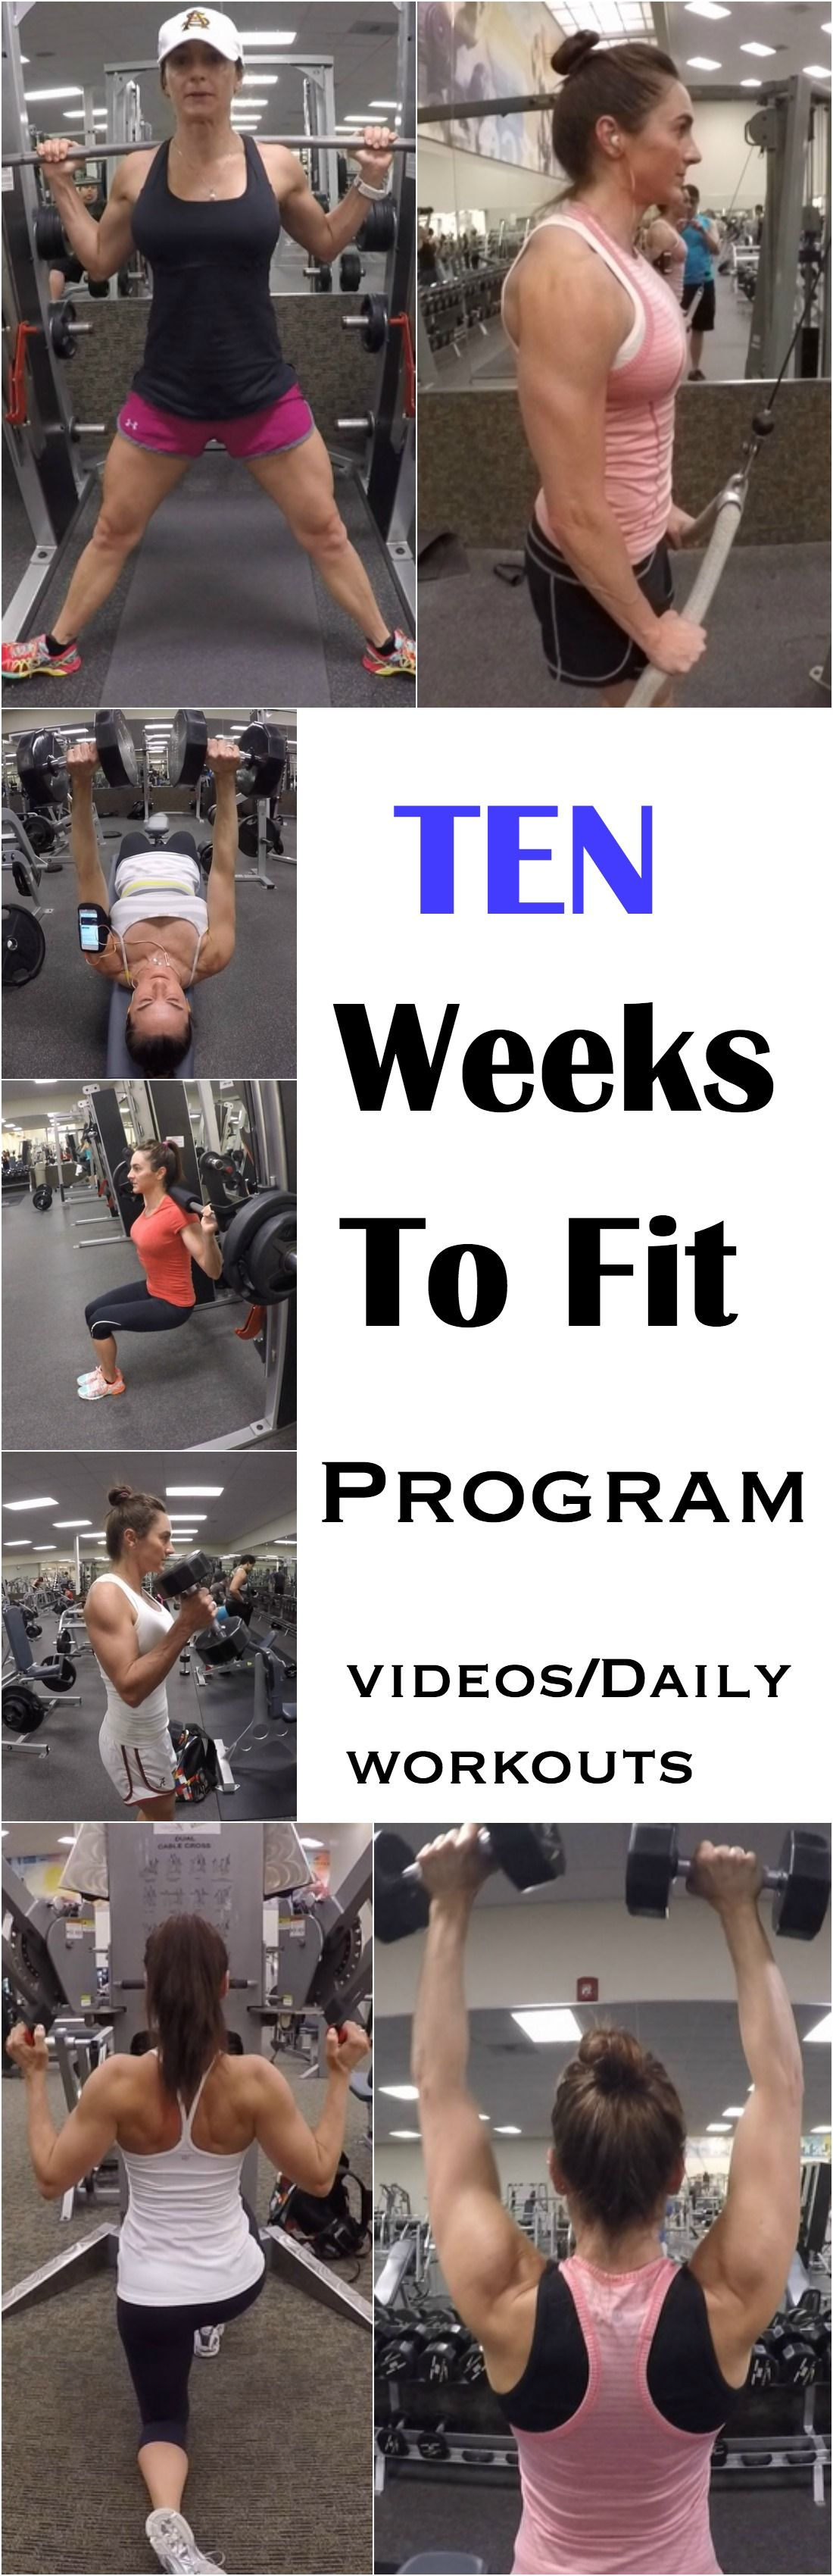 10 Weeks To Fit Program That Gym Grind 10 Week Workout Transformation Body Gym Workouts